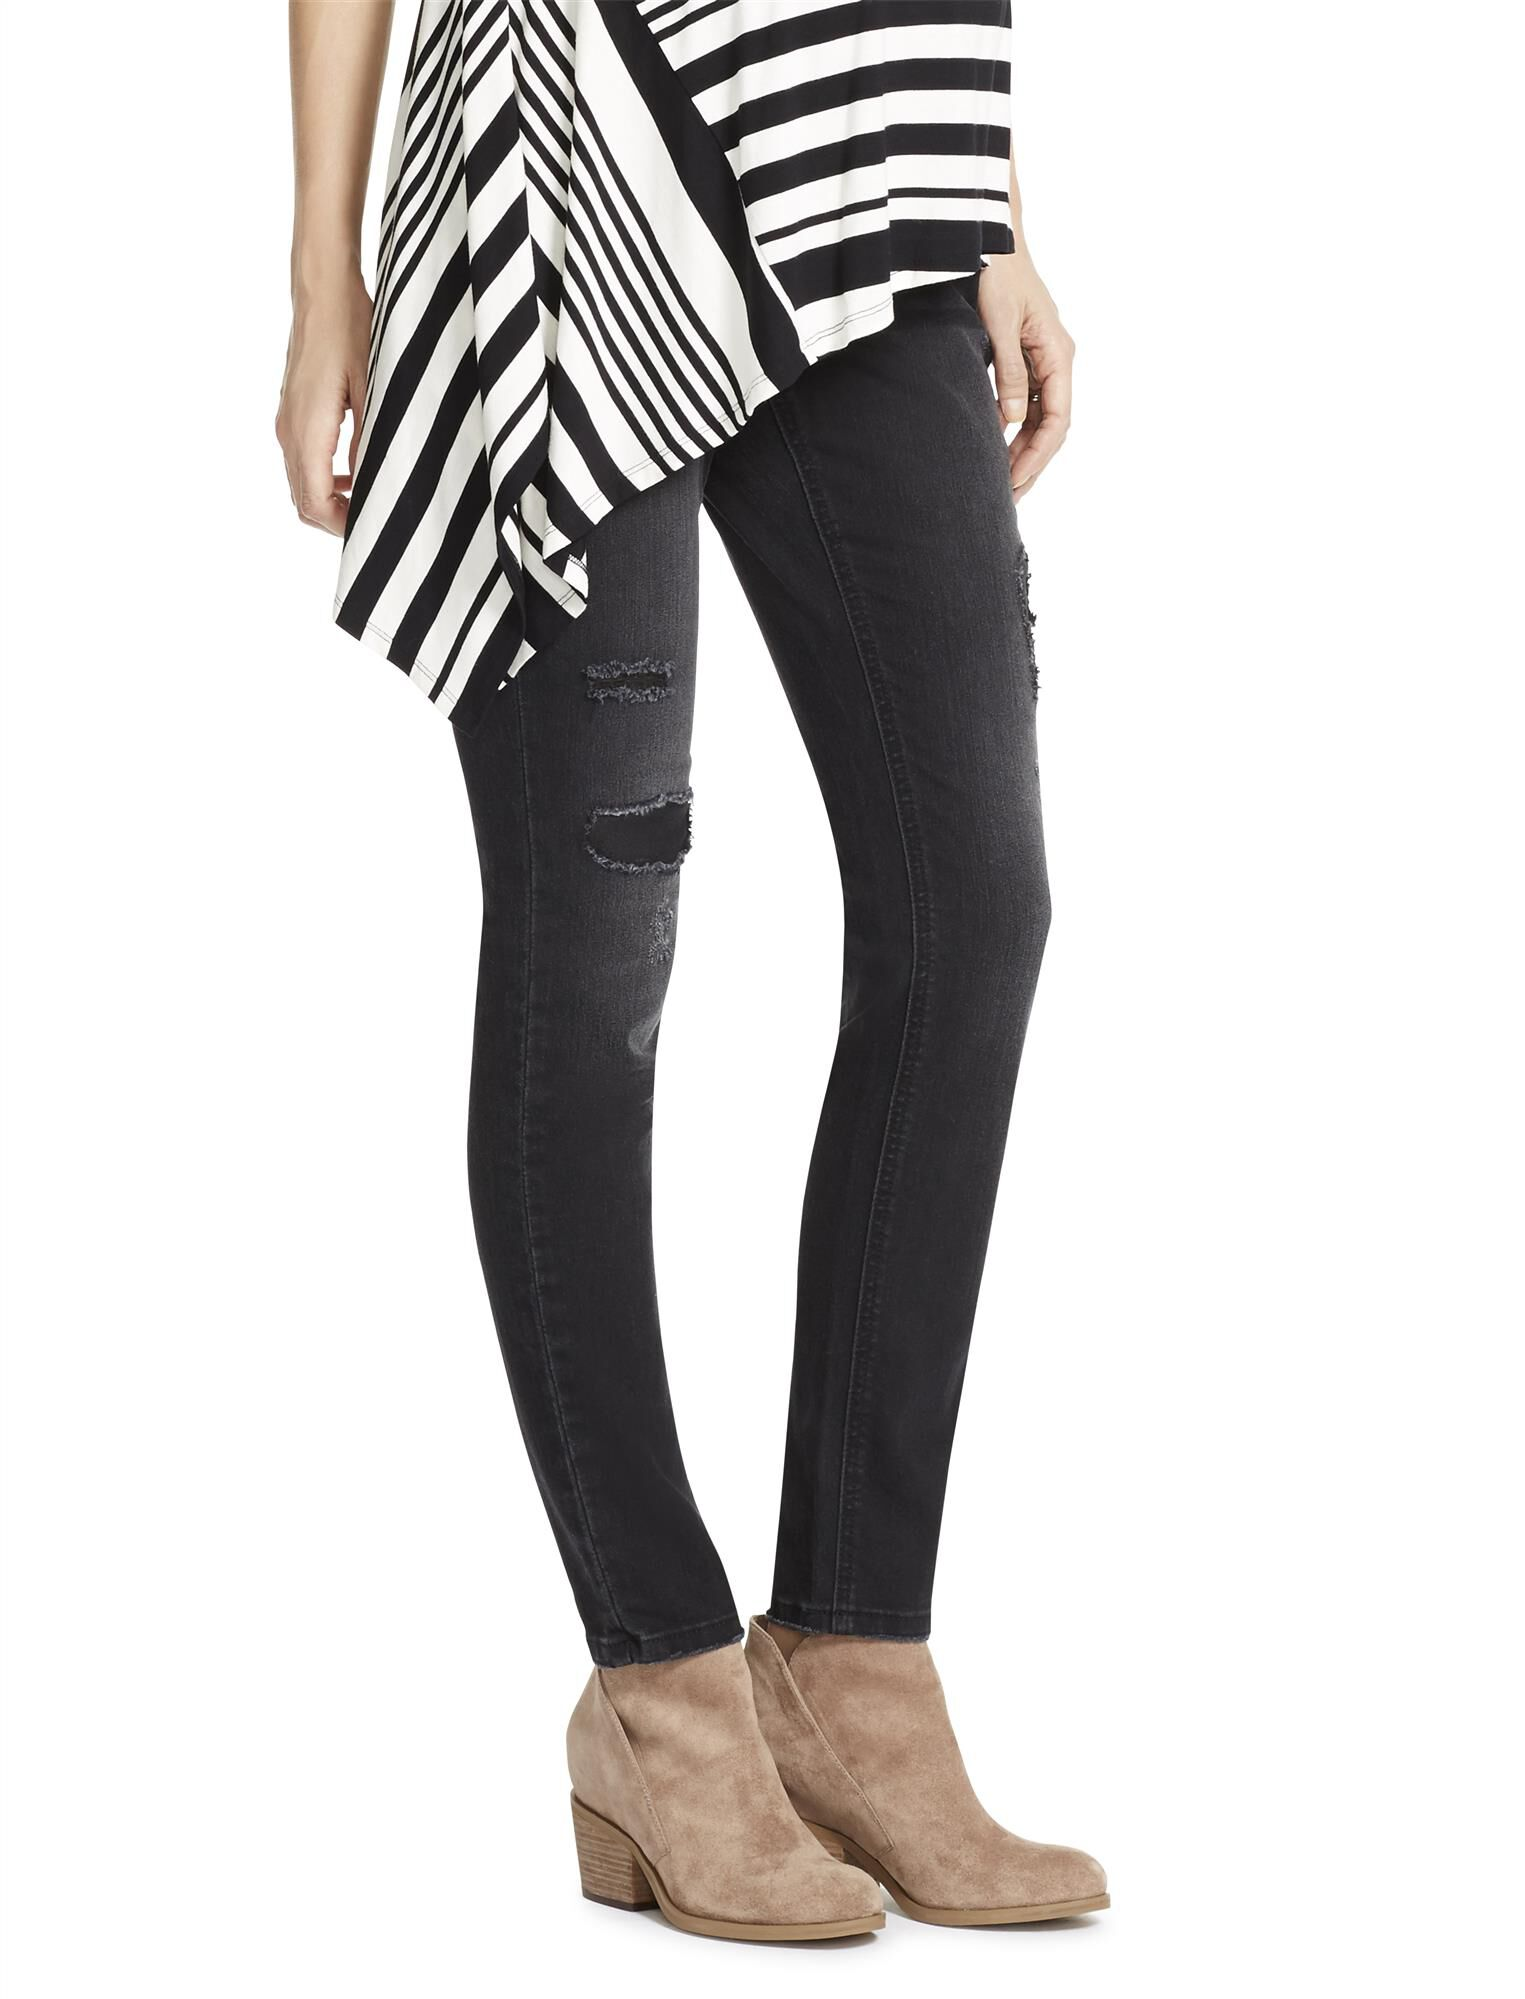 Jessica Simpson Secret Fit Belly Destructed Maternity Jeggings